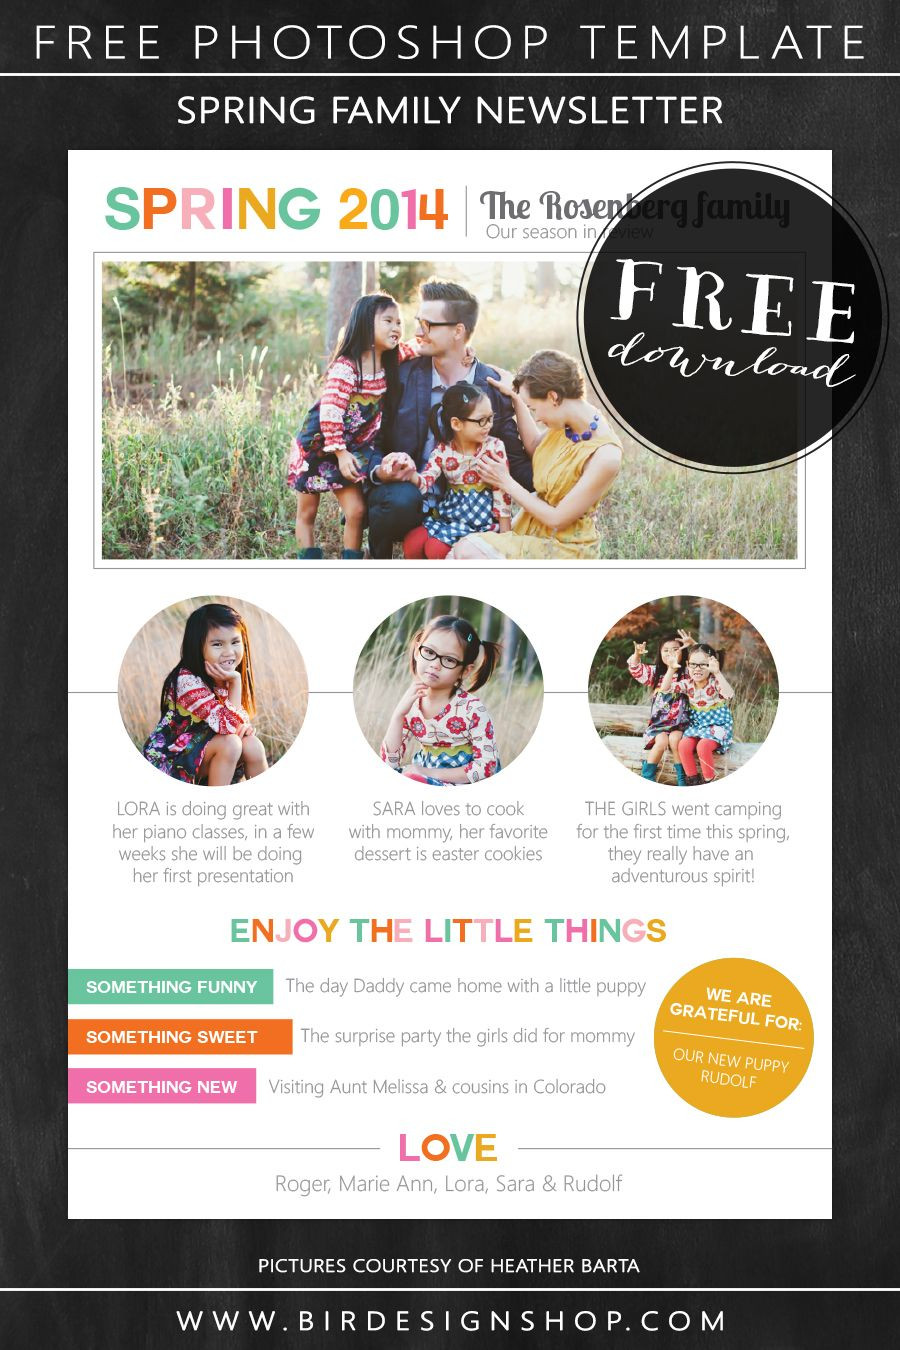 Spring family newsletter free photoshop template